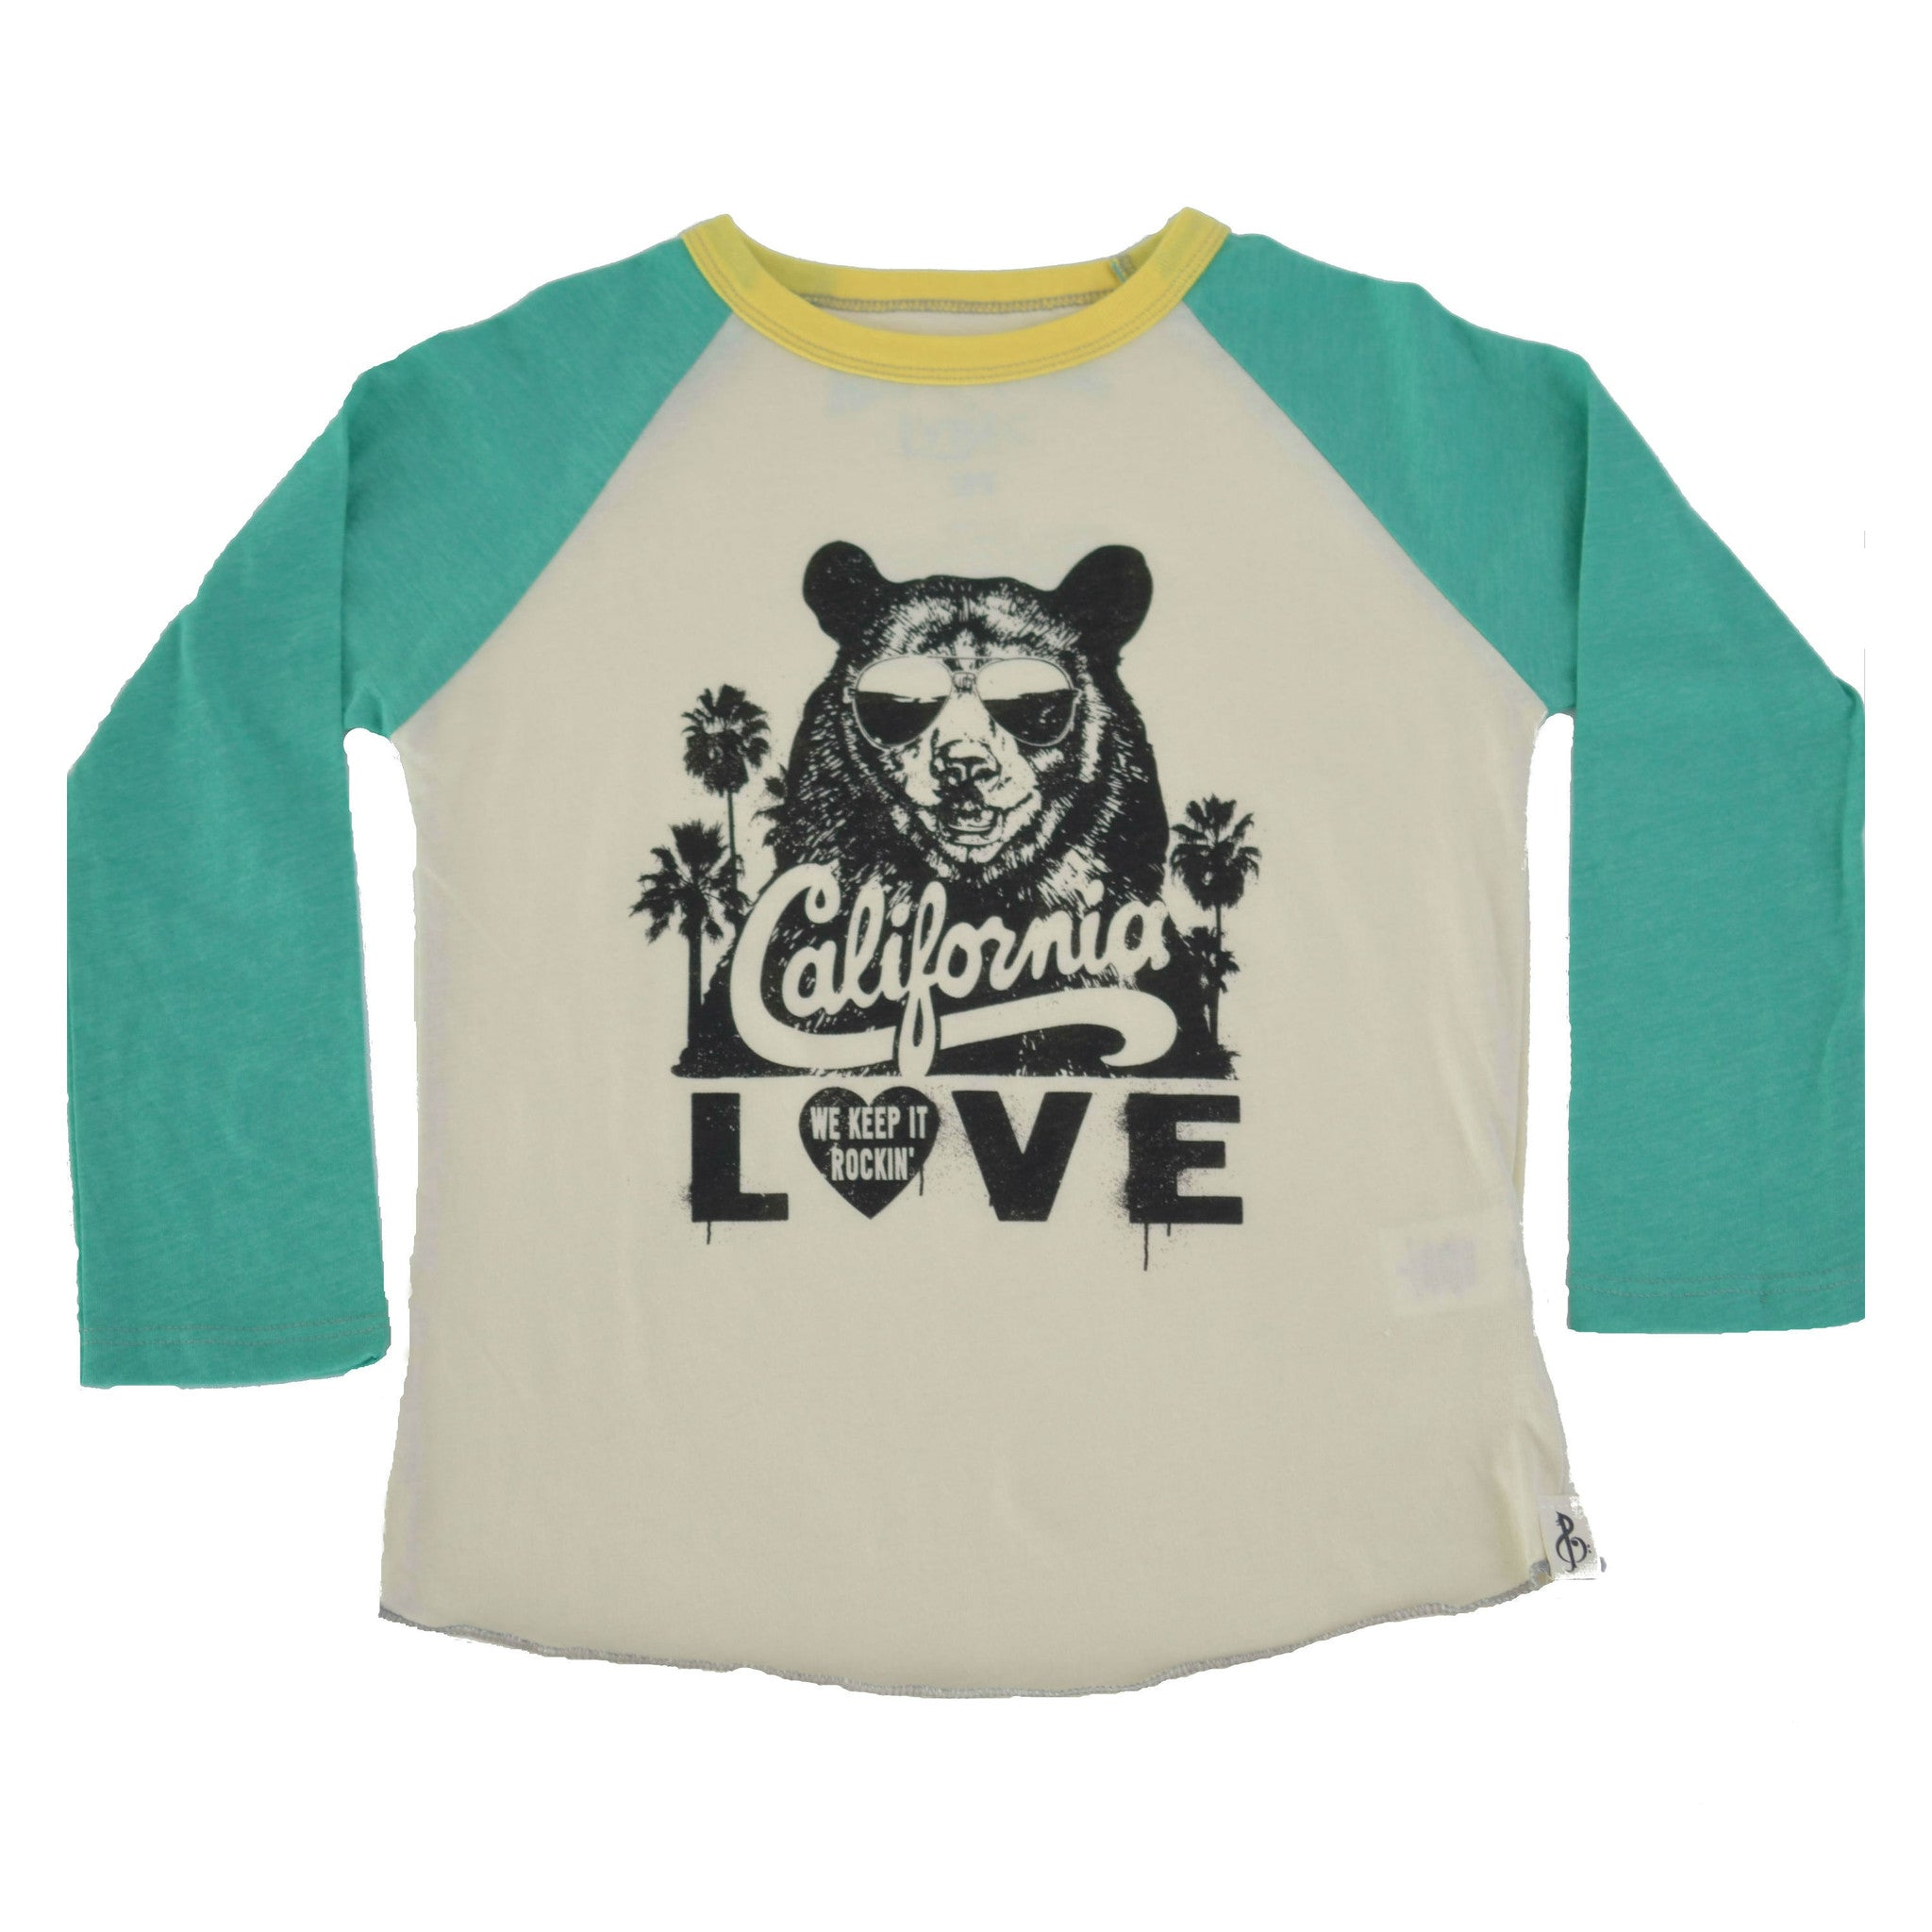 d2fccea03 Rowdy Sprout | Music Inspired Boys & Girls Tees | Cocomingos